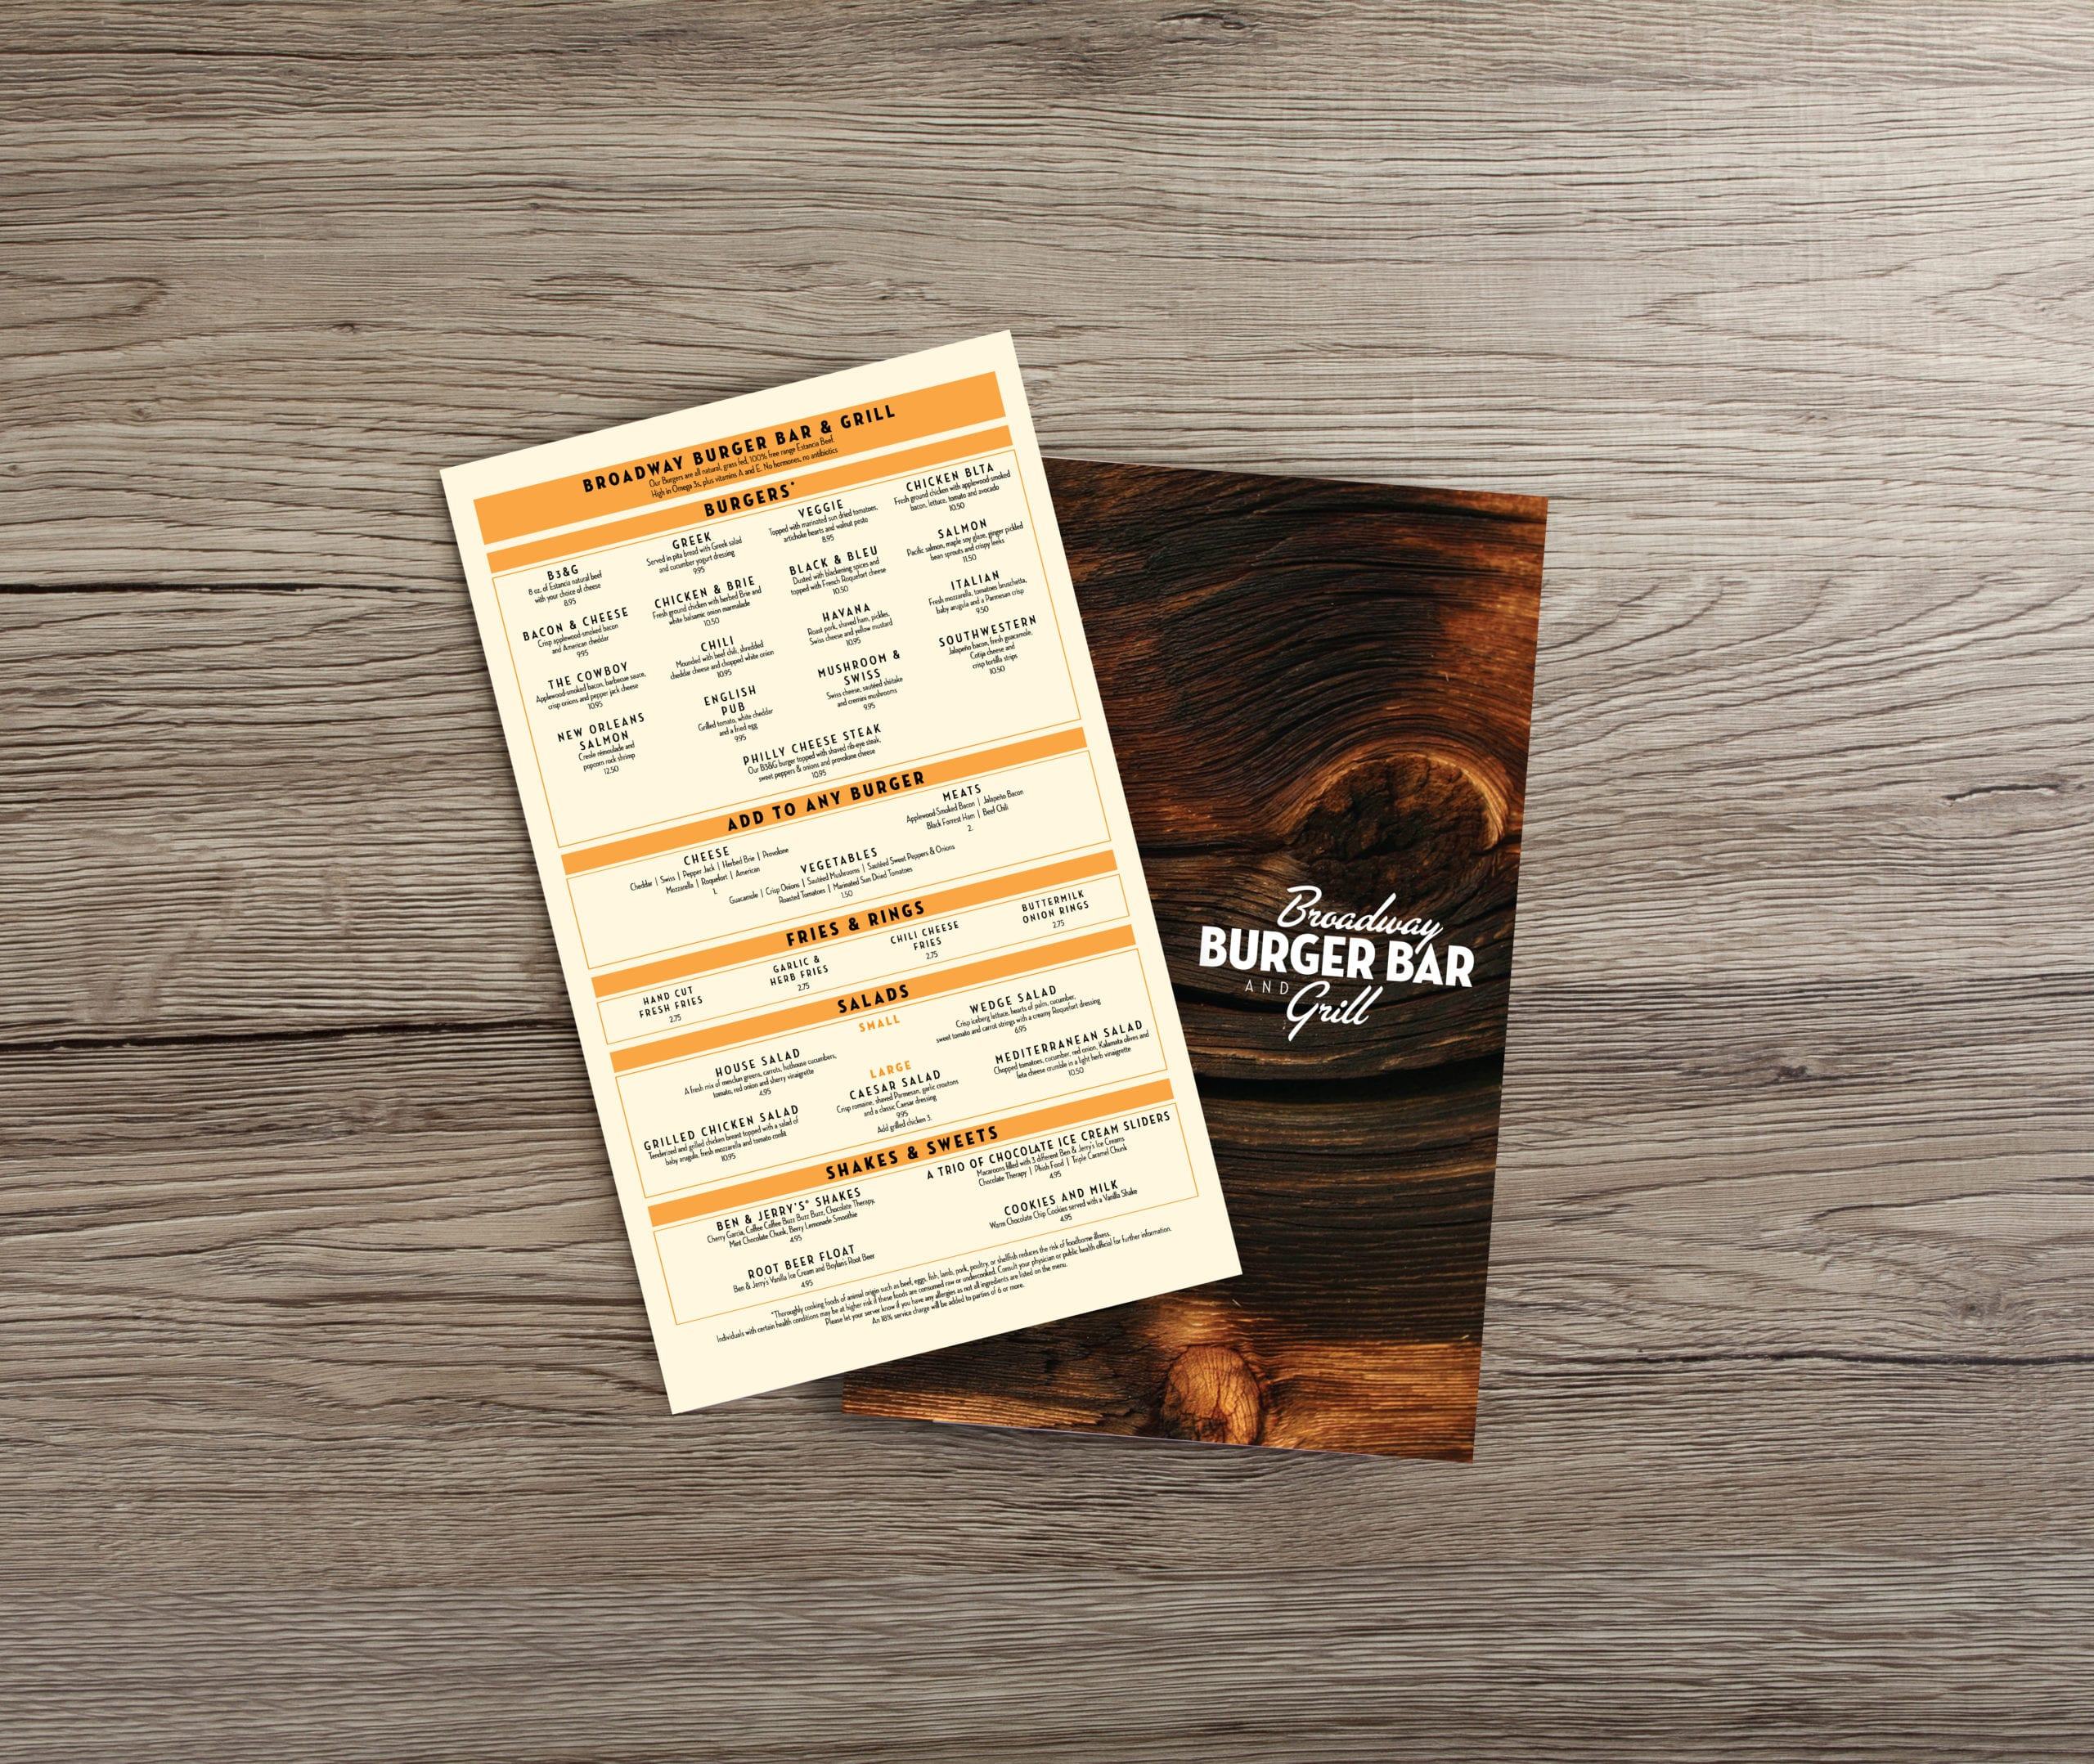 The menu of the Broadway Burger Bar and Grill, designed by Canyon Creative